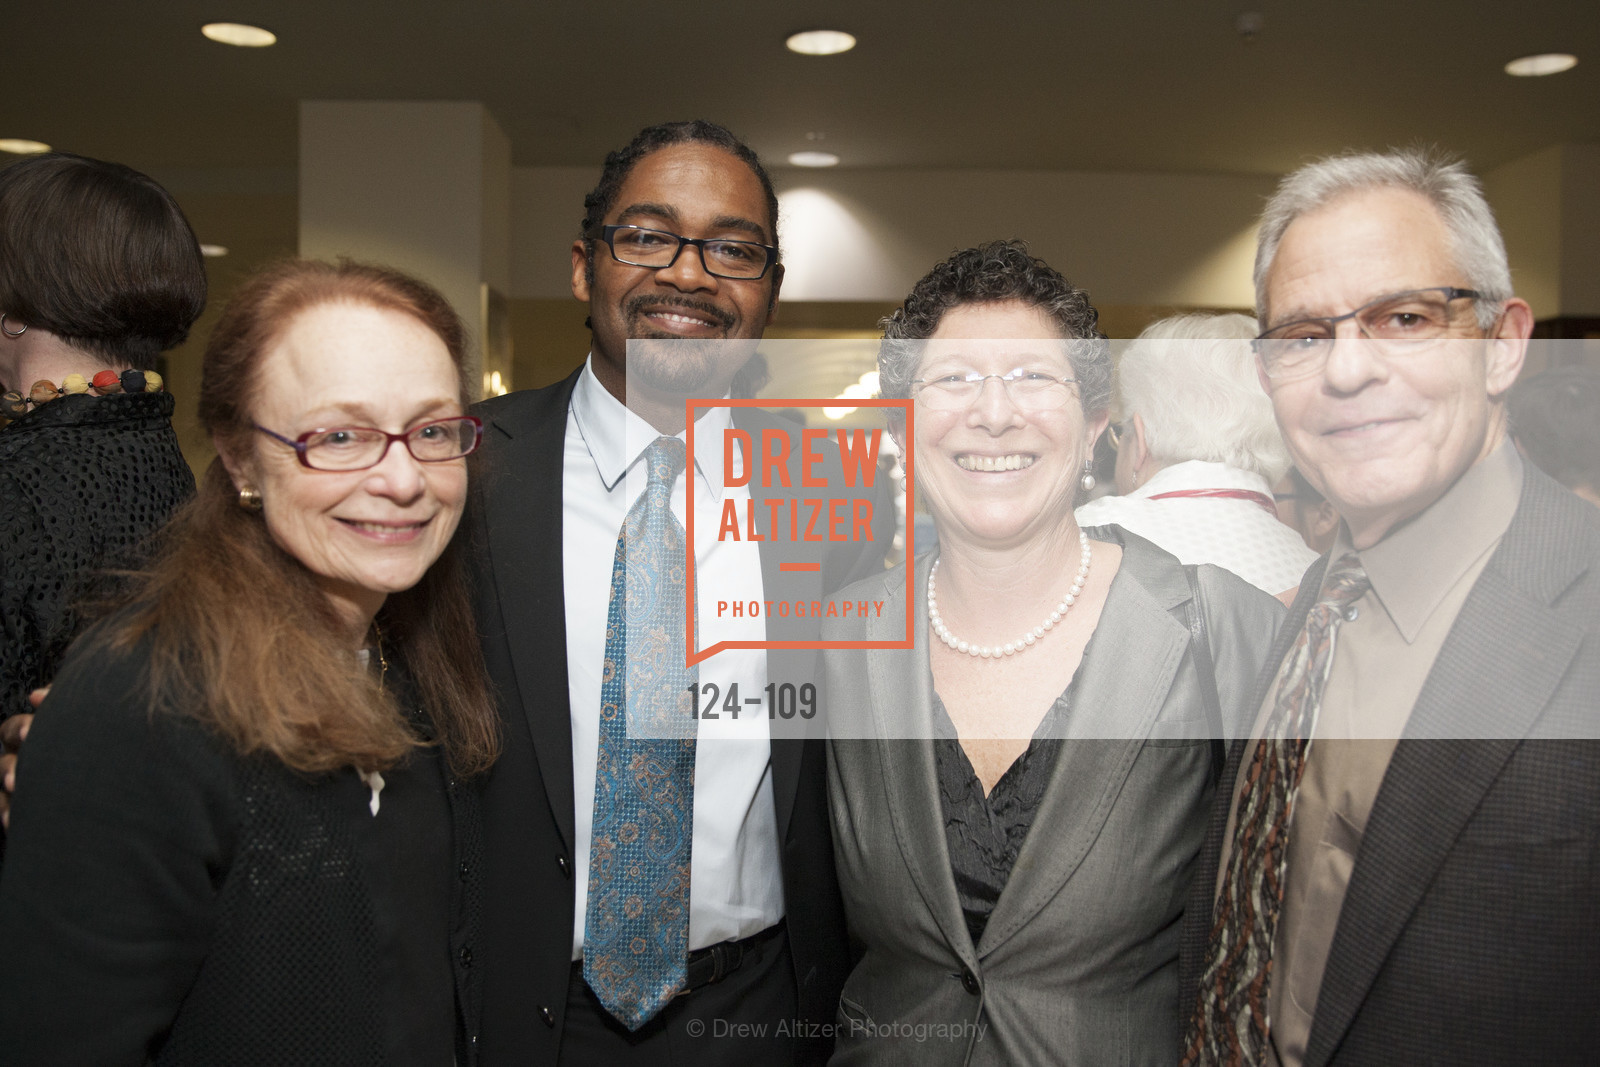 Mary Rutherford, Anthony Jones, Carol Brosgart, Mark Bresnick, PANGAEA GLOBAL HEALTH Leadership Dinner at Rotunda in Oakland, The Rotunda. Oakland, May 11th, 2015,Drew Altizer, Drew Altizer Photography, full-service agency, private events, San Francisco photographer, photographer california